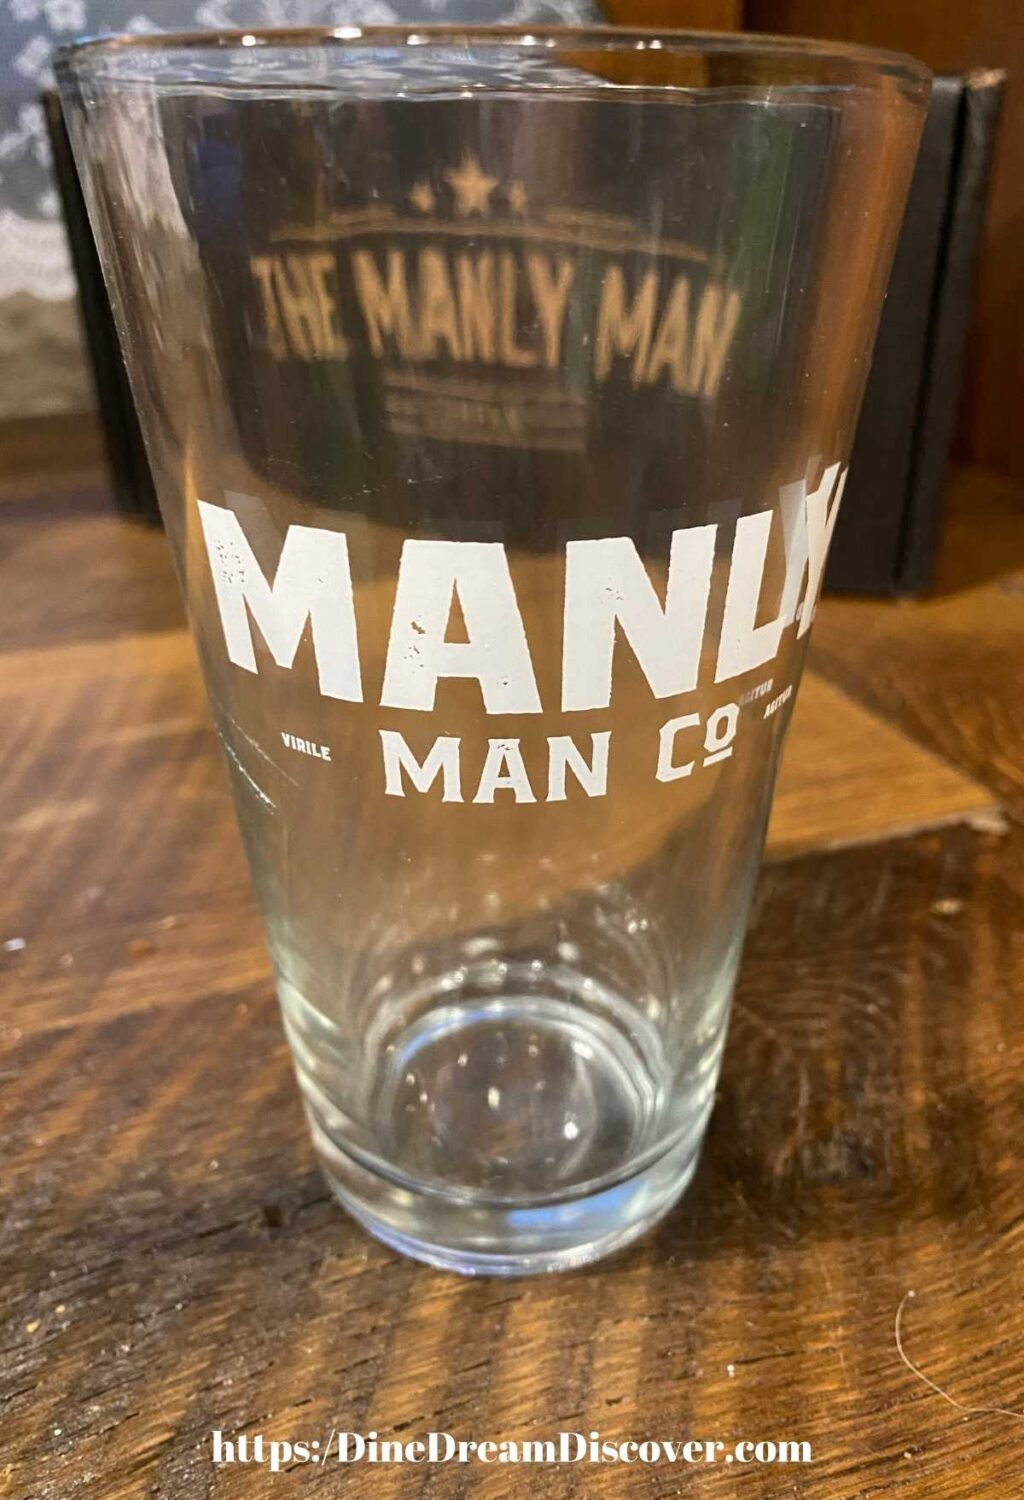 The Manly Man Co.